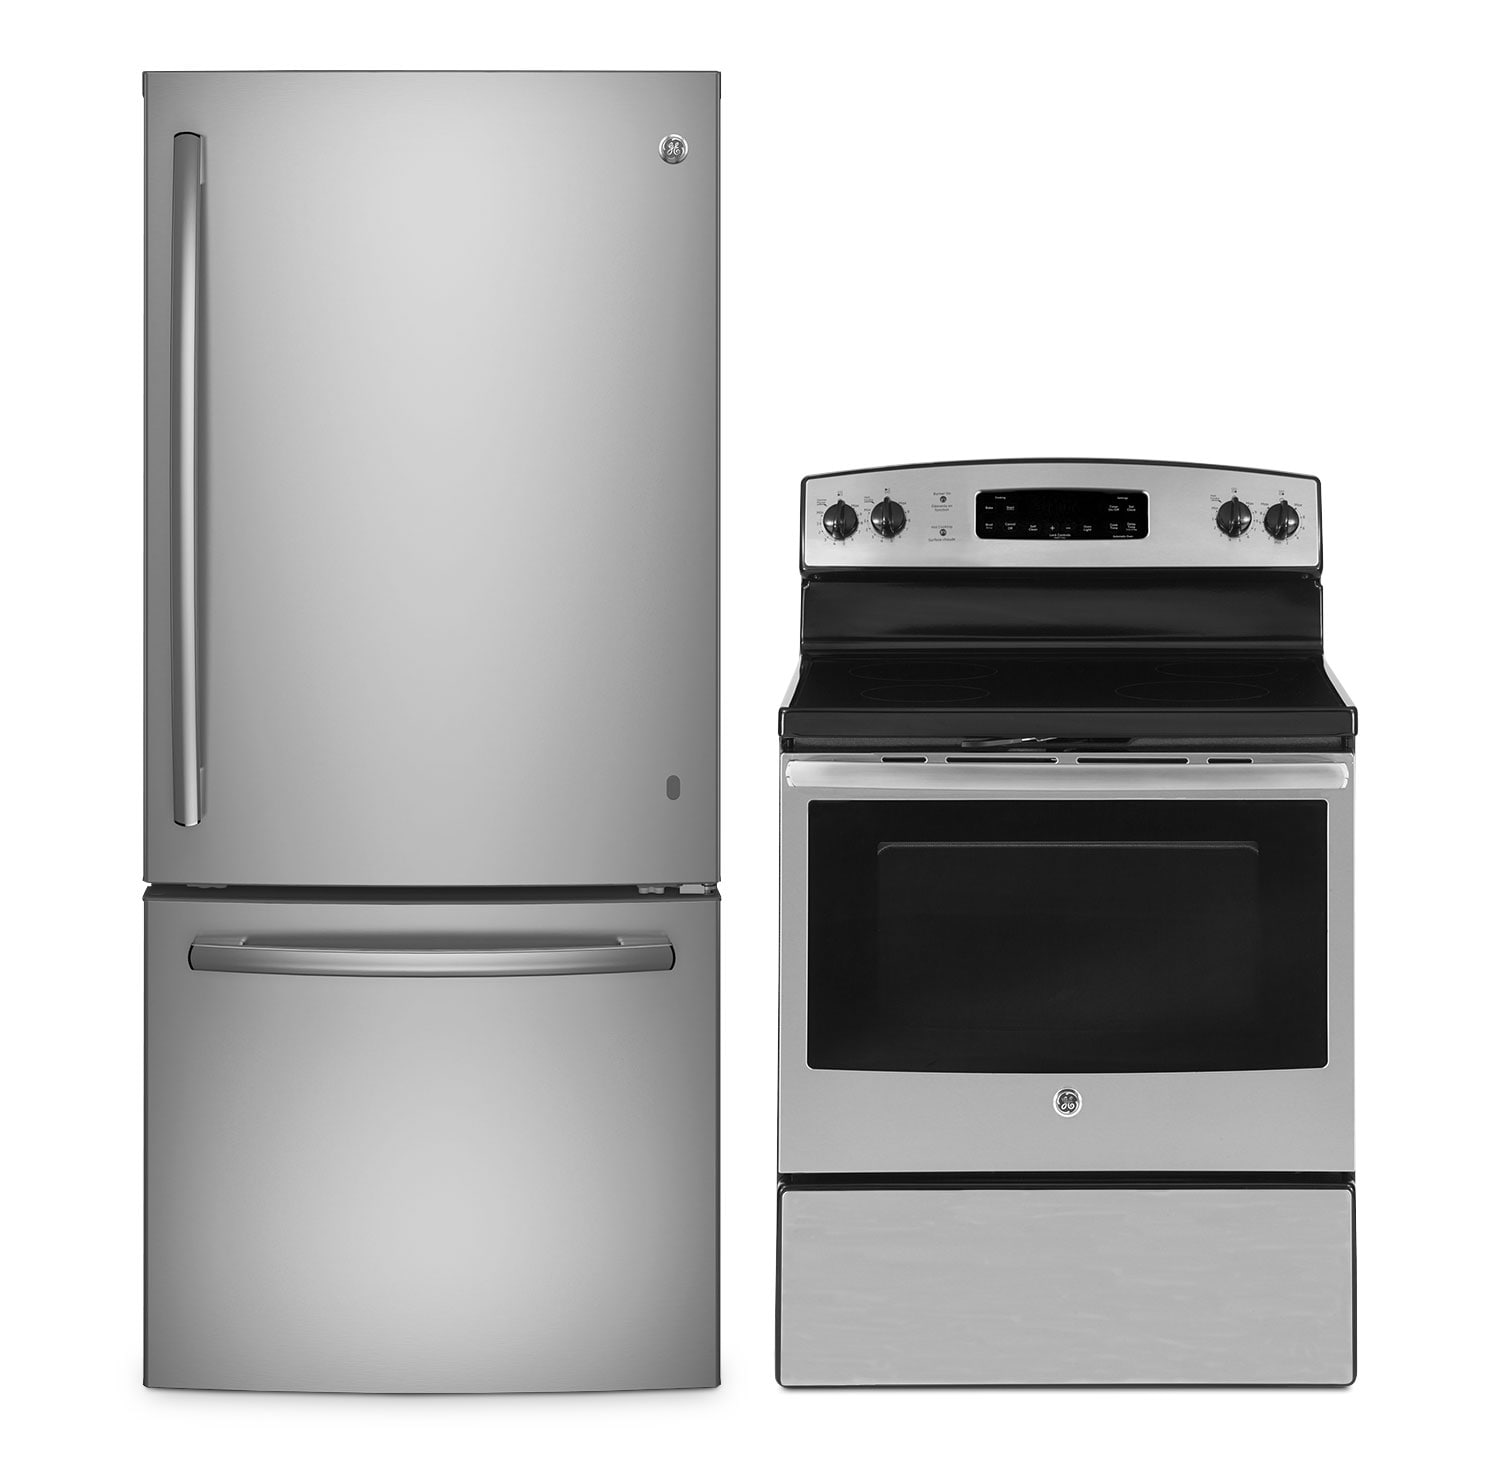 Refrigerators and Freezers - GE 21 Cu. Ft. Bottom-Mount Refrigerator and 5.0 Cu. Ft. Electric Range – Stainless Steel